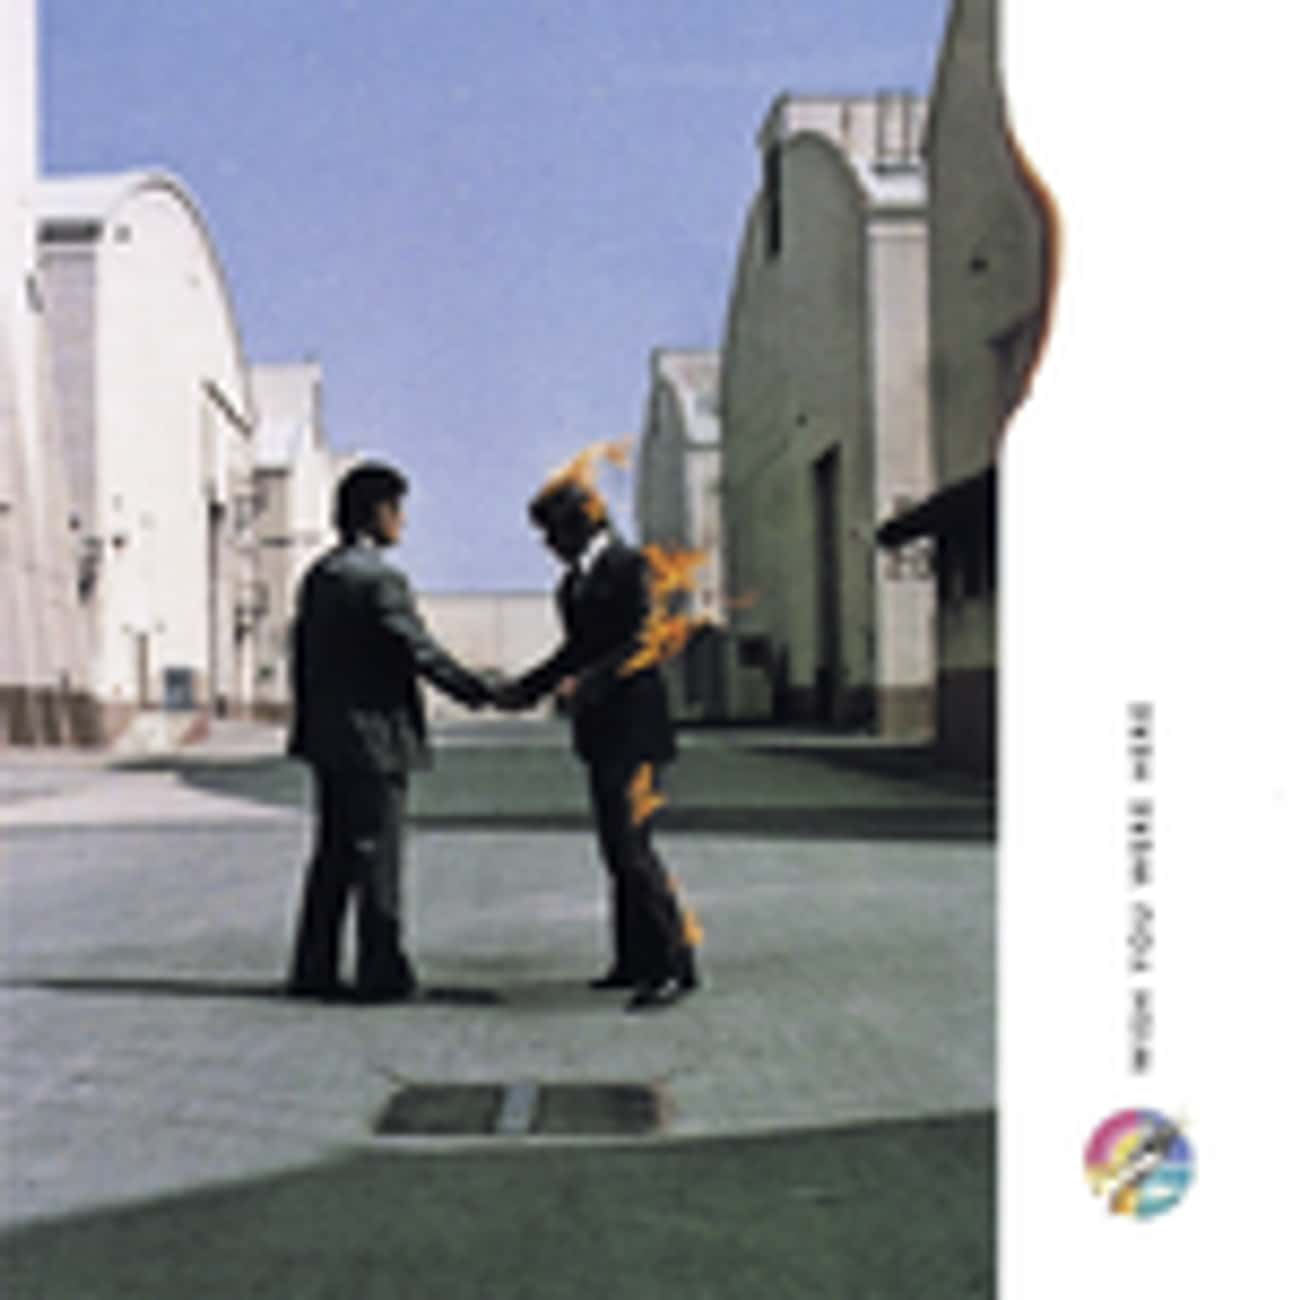 Wish You Were Here is listed (or ranked) 4 on the list The Greatest Album Covers of All Time